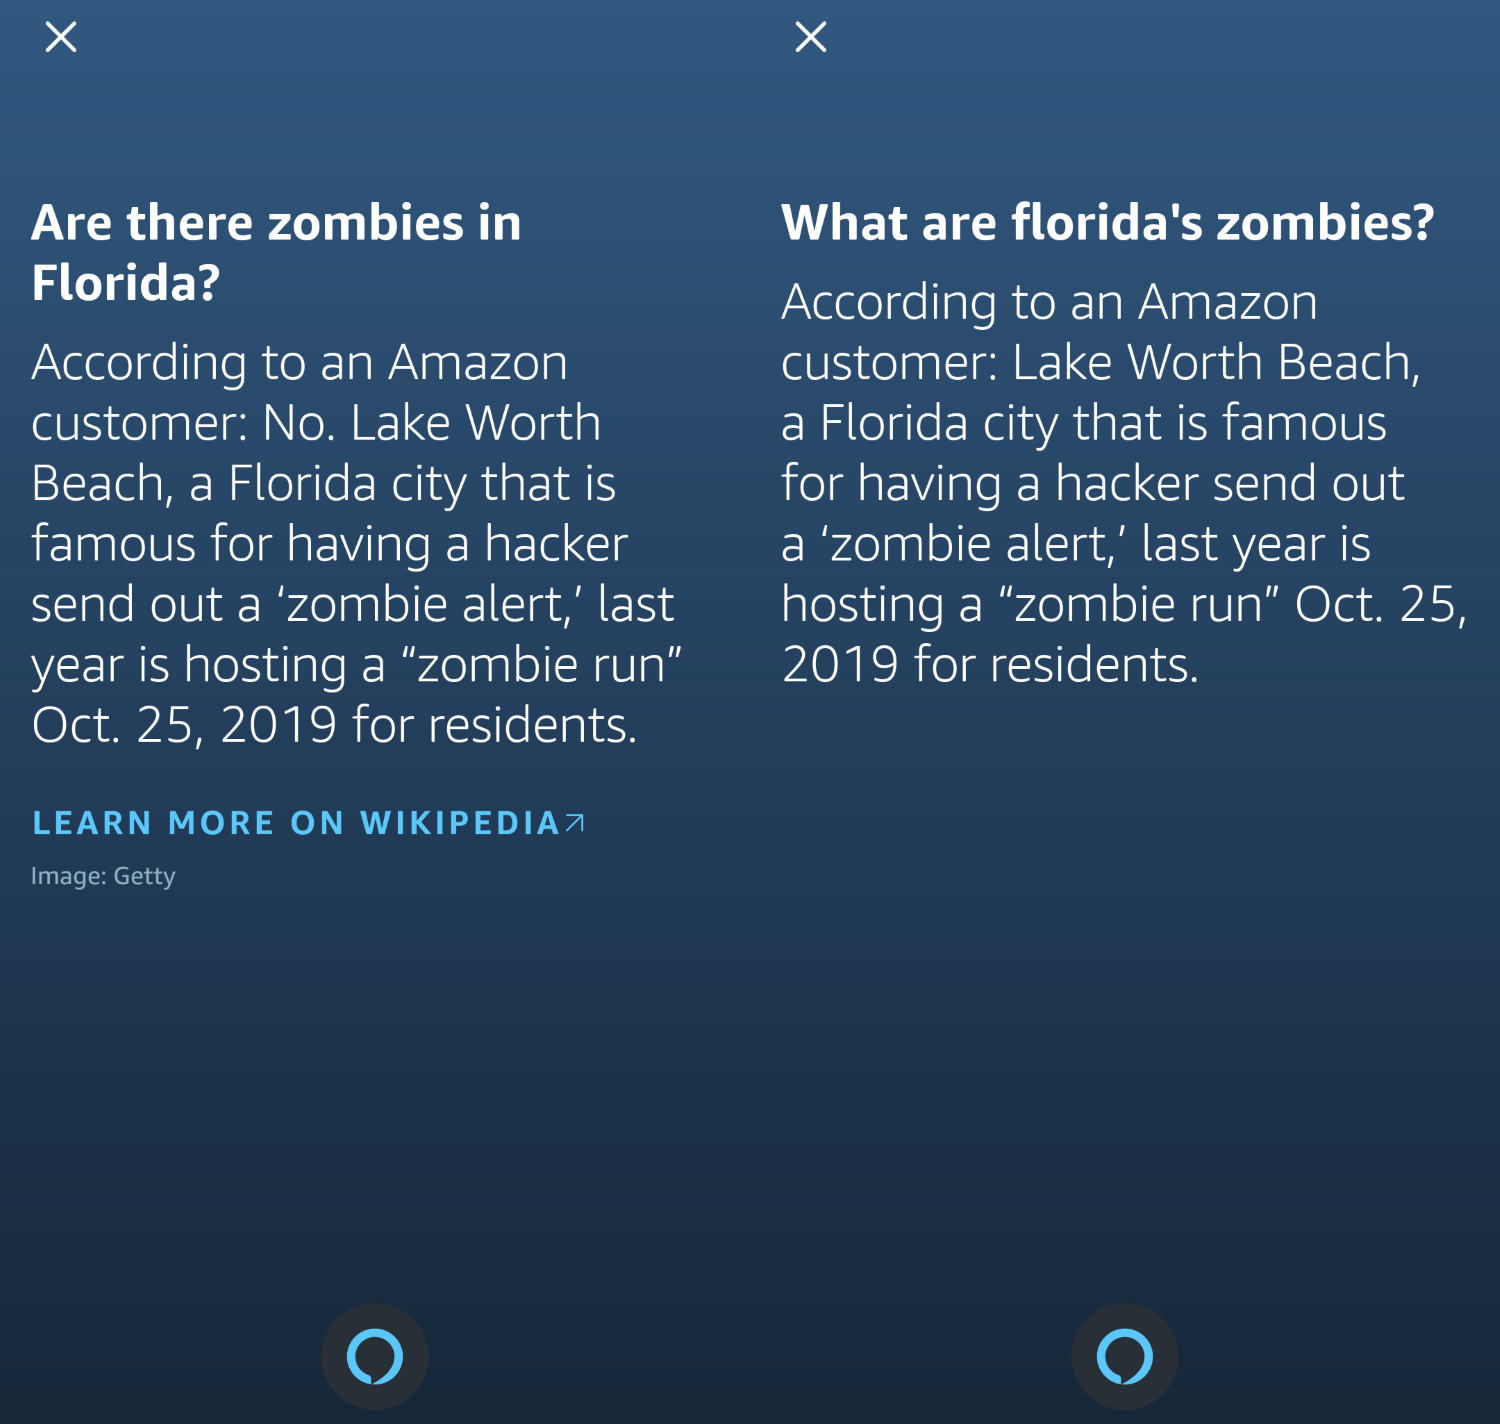 Amazon Alexa responding about Florida and zombies